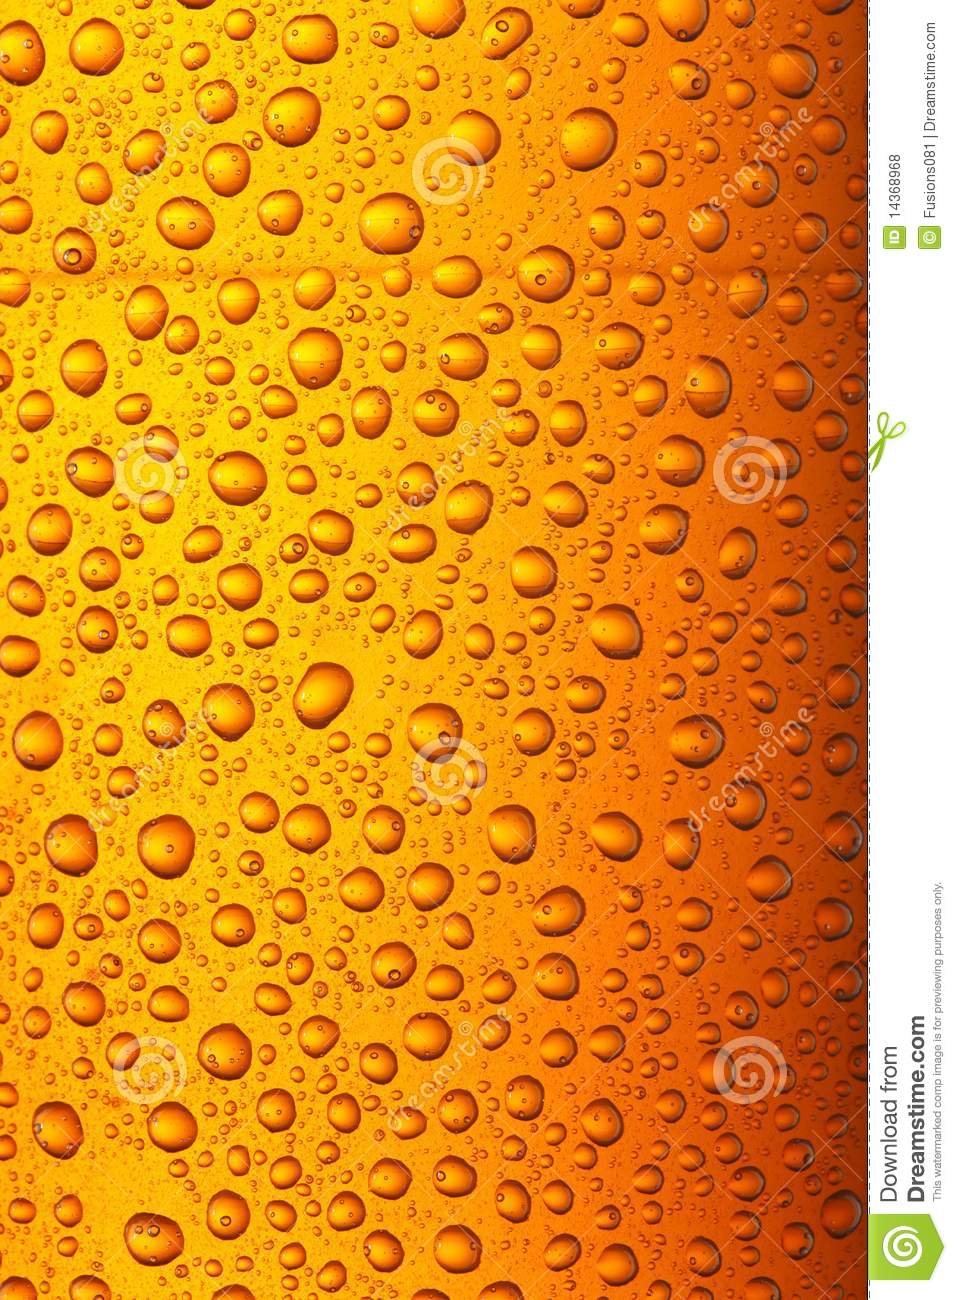 Orange Yellow Beer Droplets Royalty Free Stock Photos